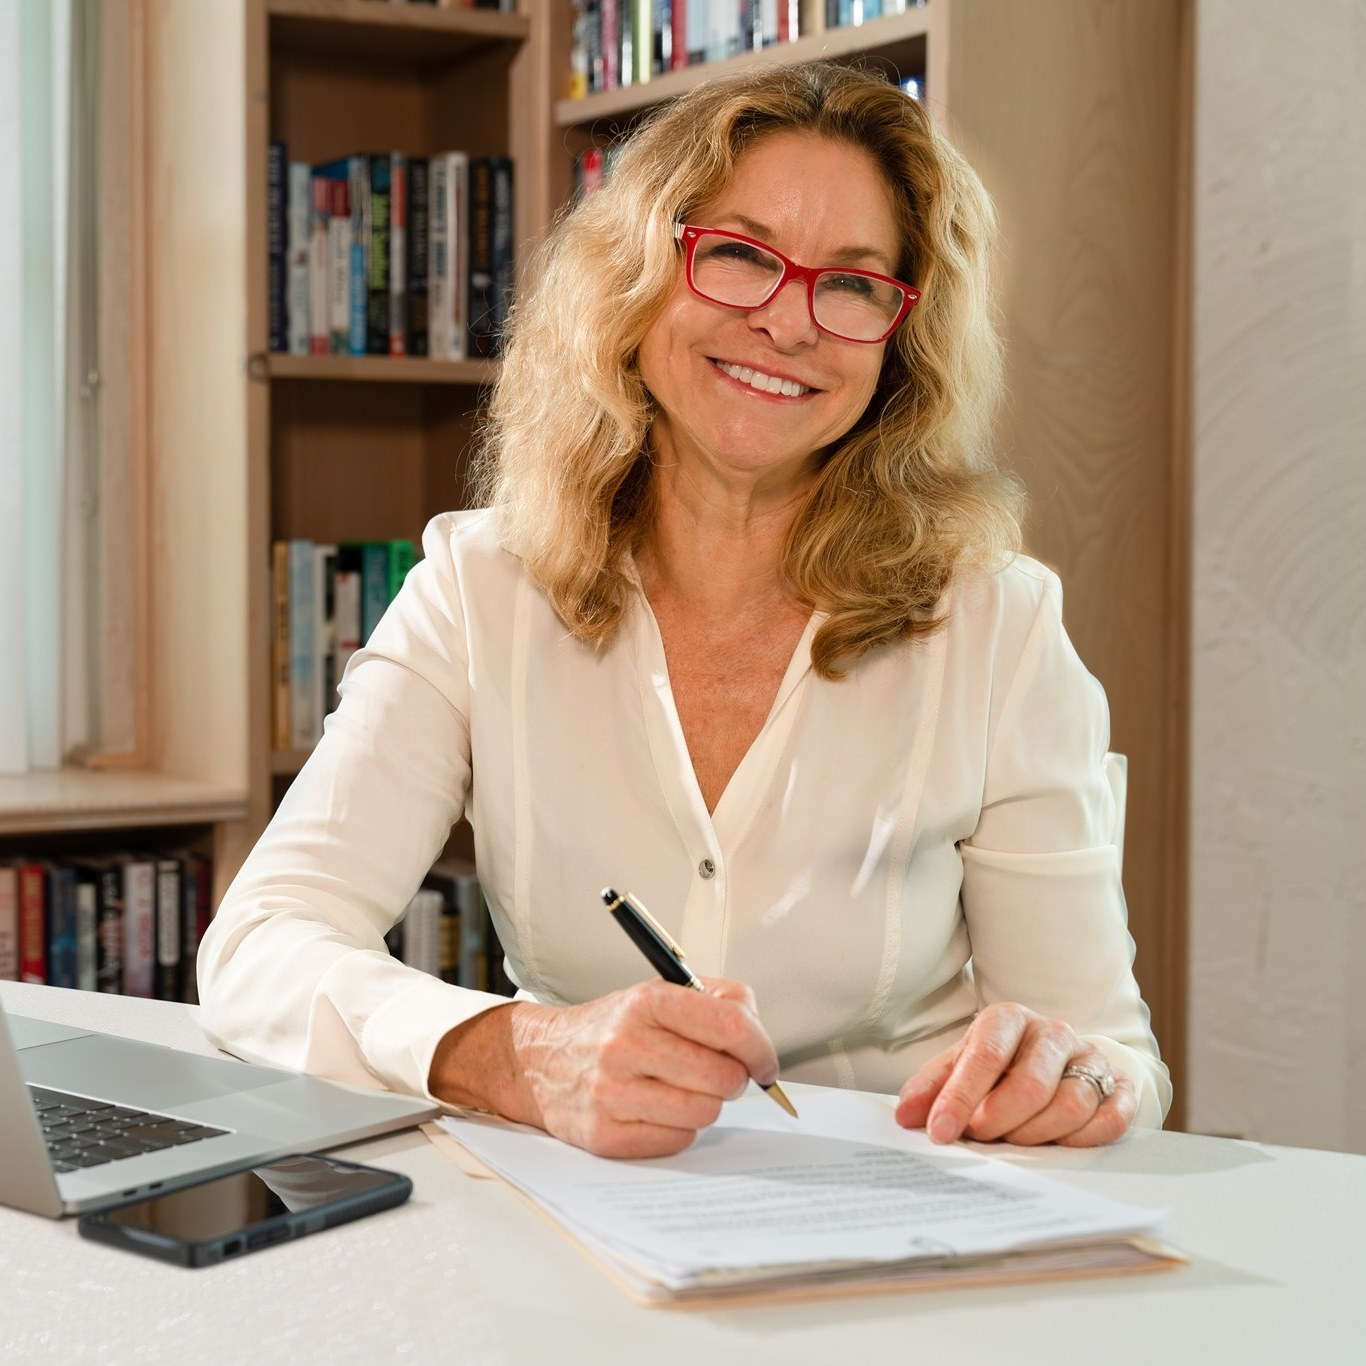 A woman in red glasses and a white blouse sits at a desk with a laptop, holding a pen over a piece of paper, smiling at the camera.